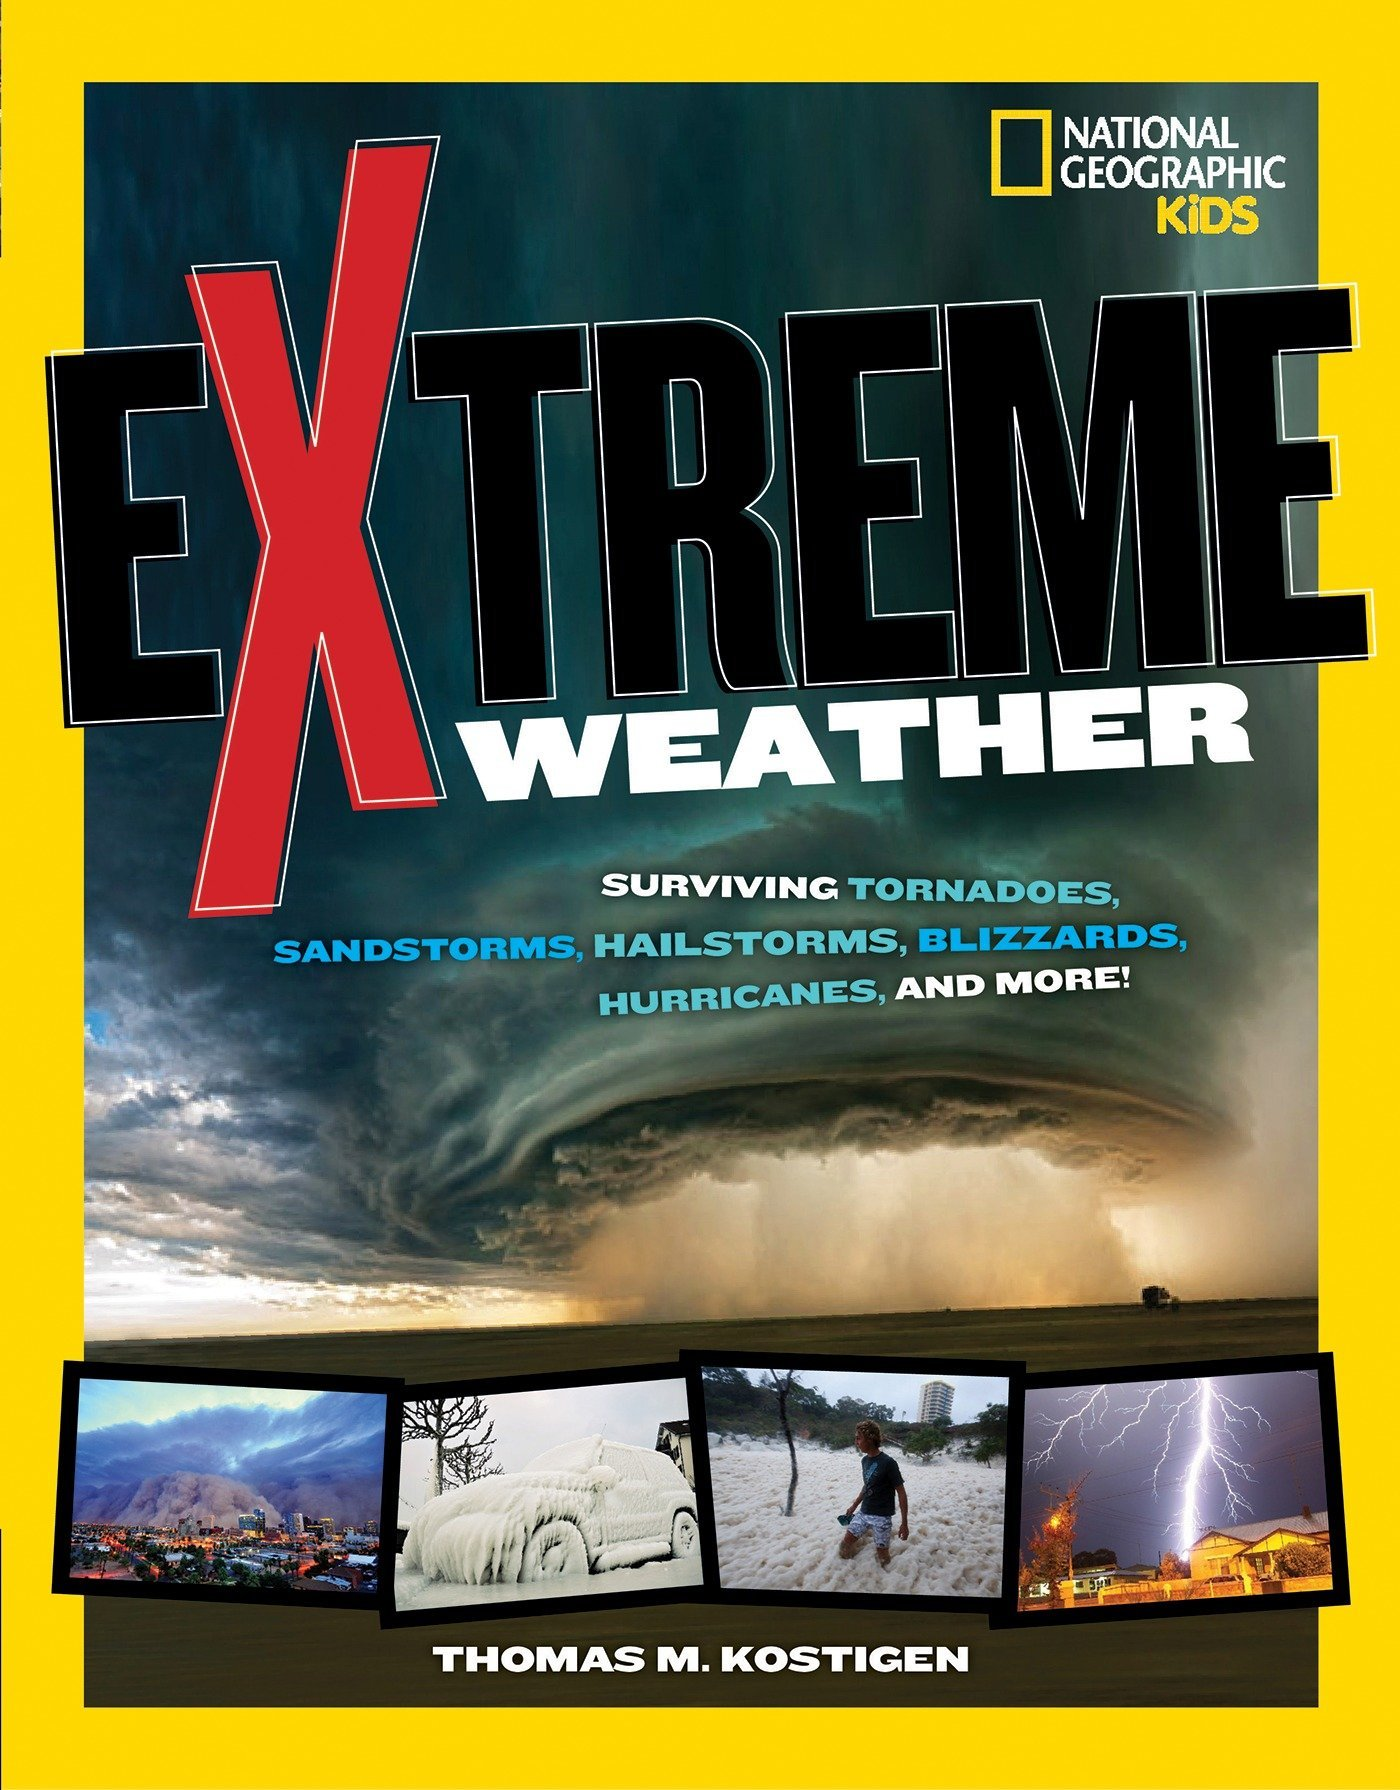 Extreme Weather: Surviving Tornadoes, Sandstorms, Hailstorms, Blizzards,  Hurricanes, and More! (National Geographic Kids) Paperback – October 14,  2014